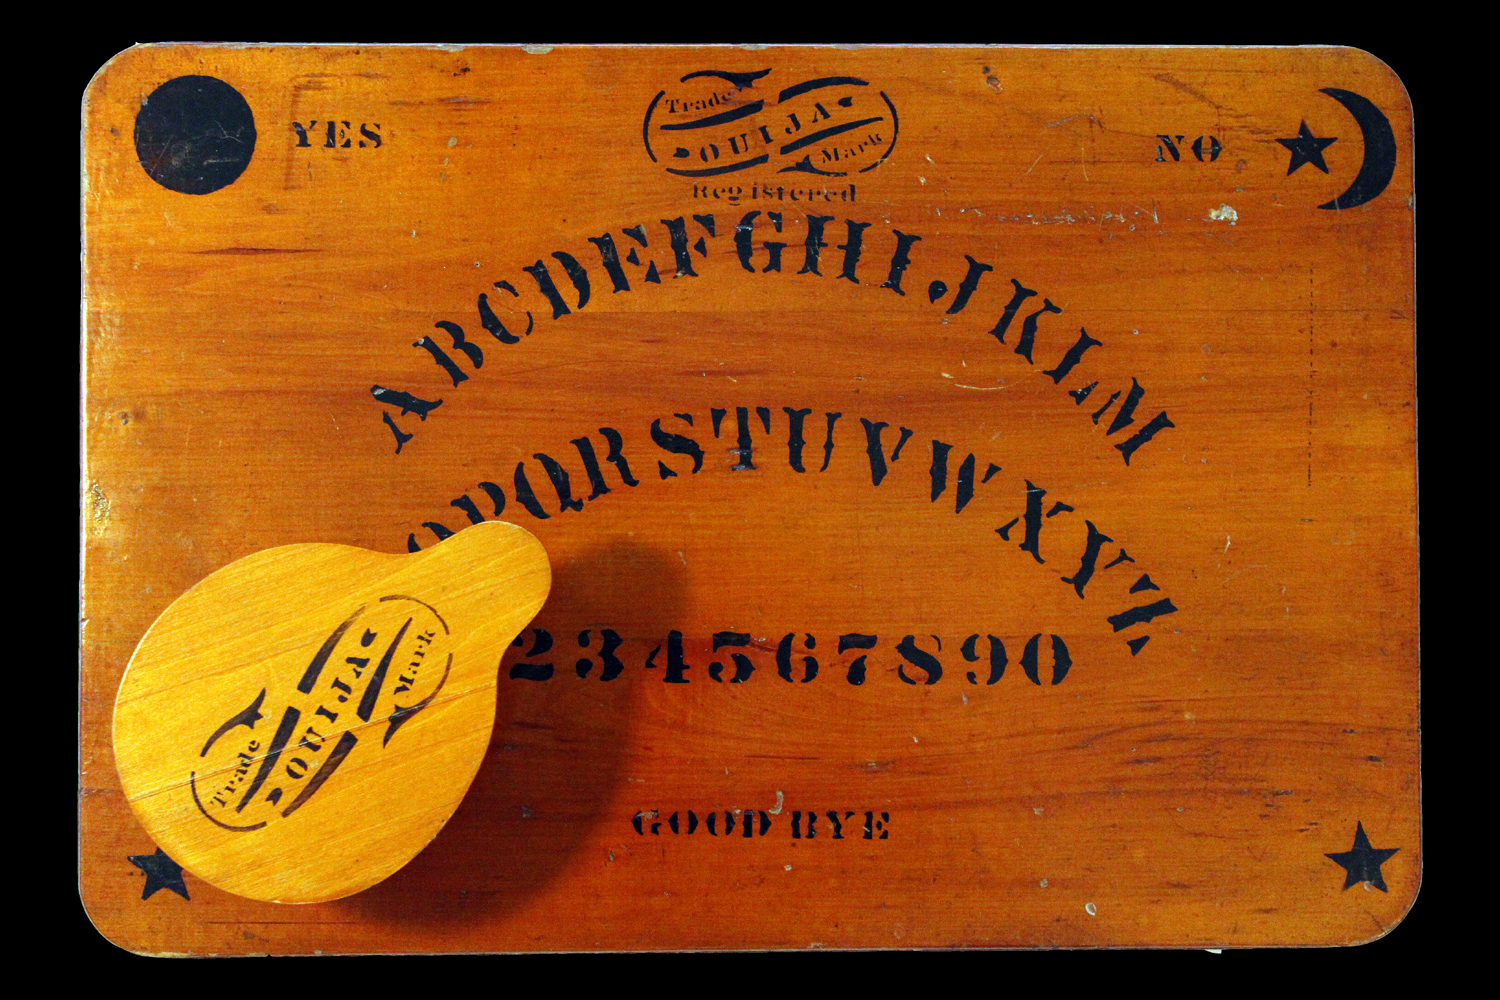 A Ouija game from 1891, one of the earliest boards.